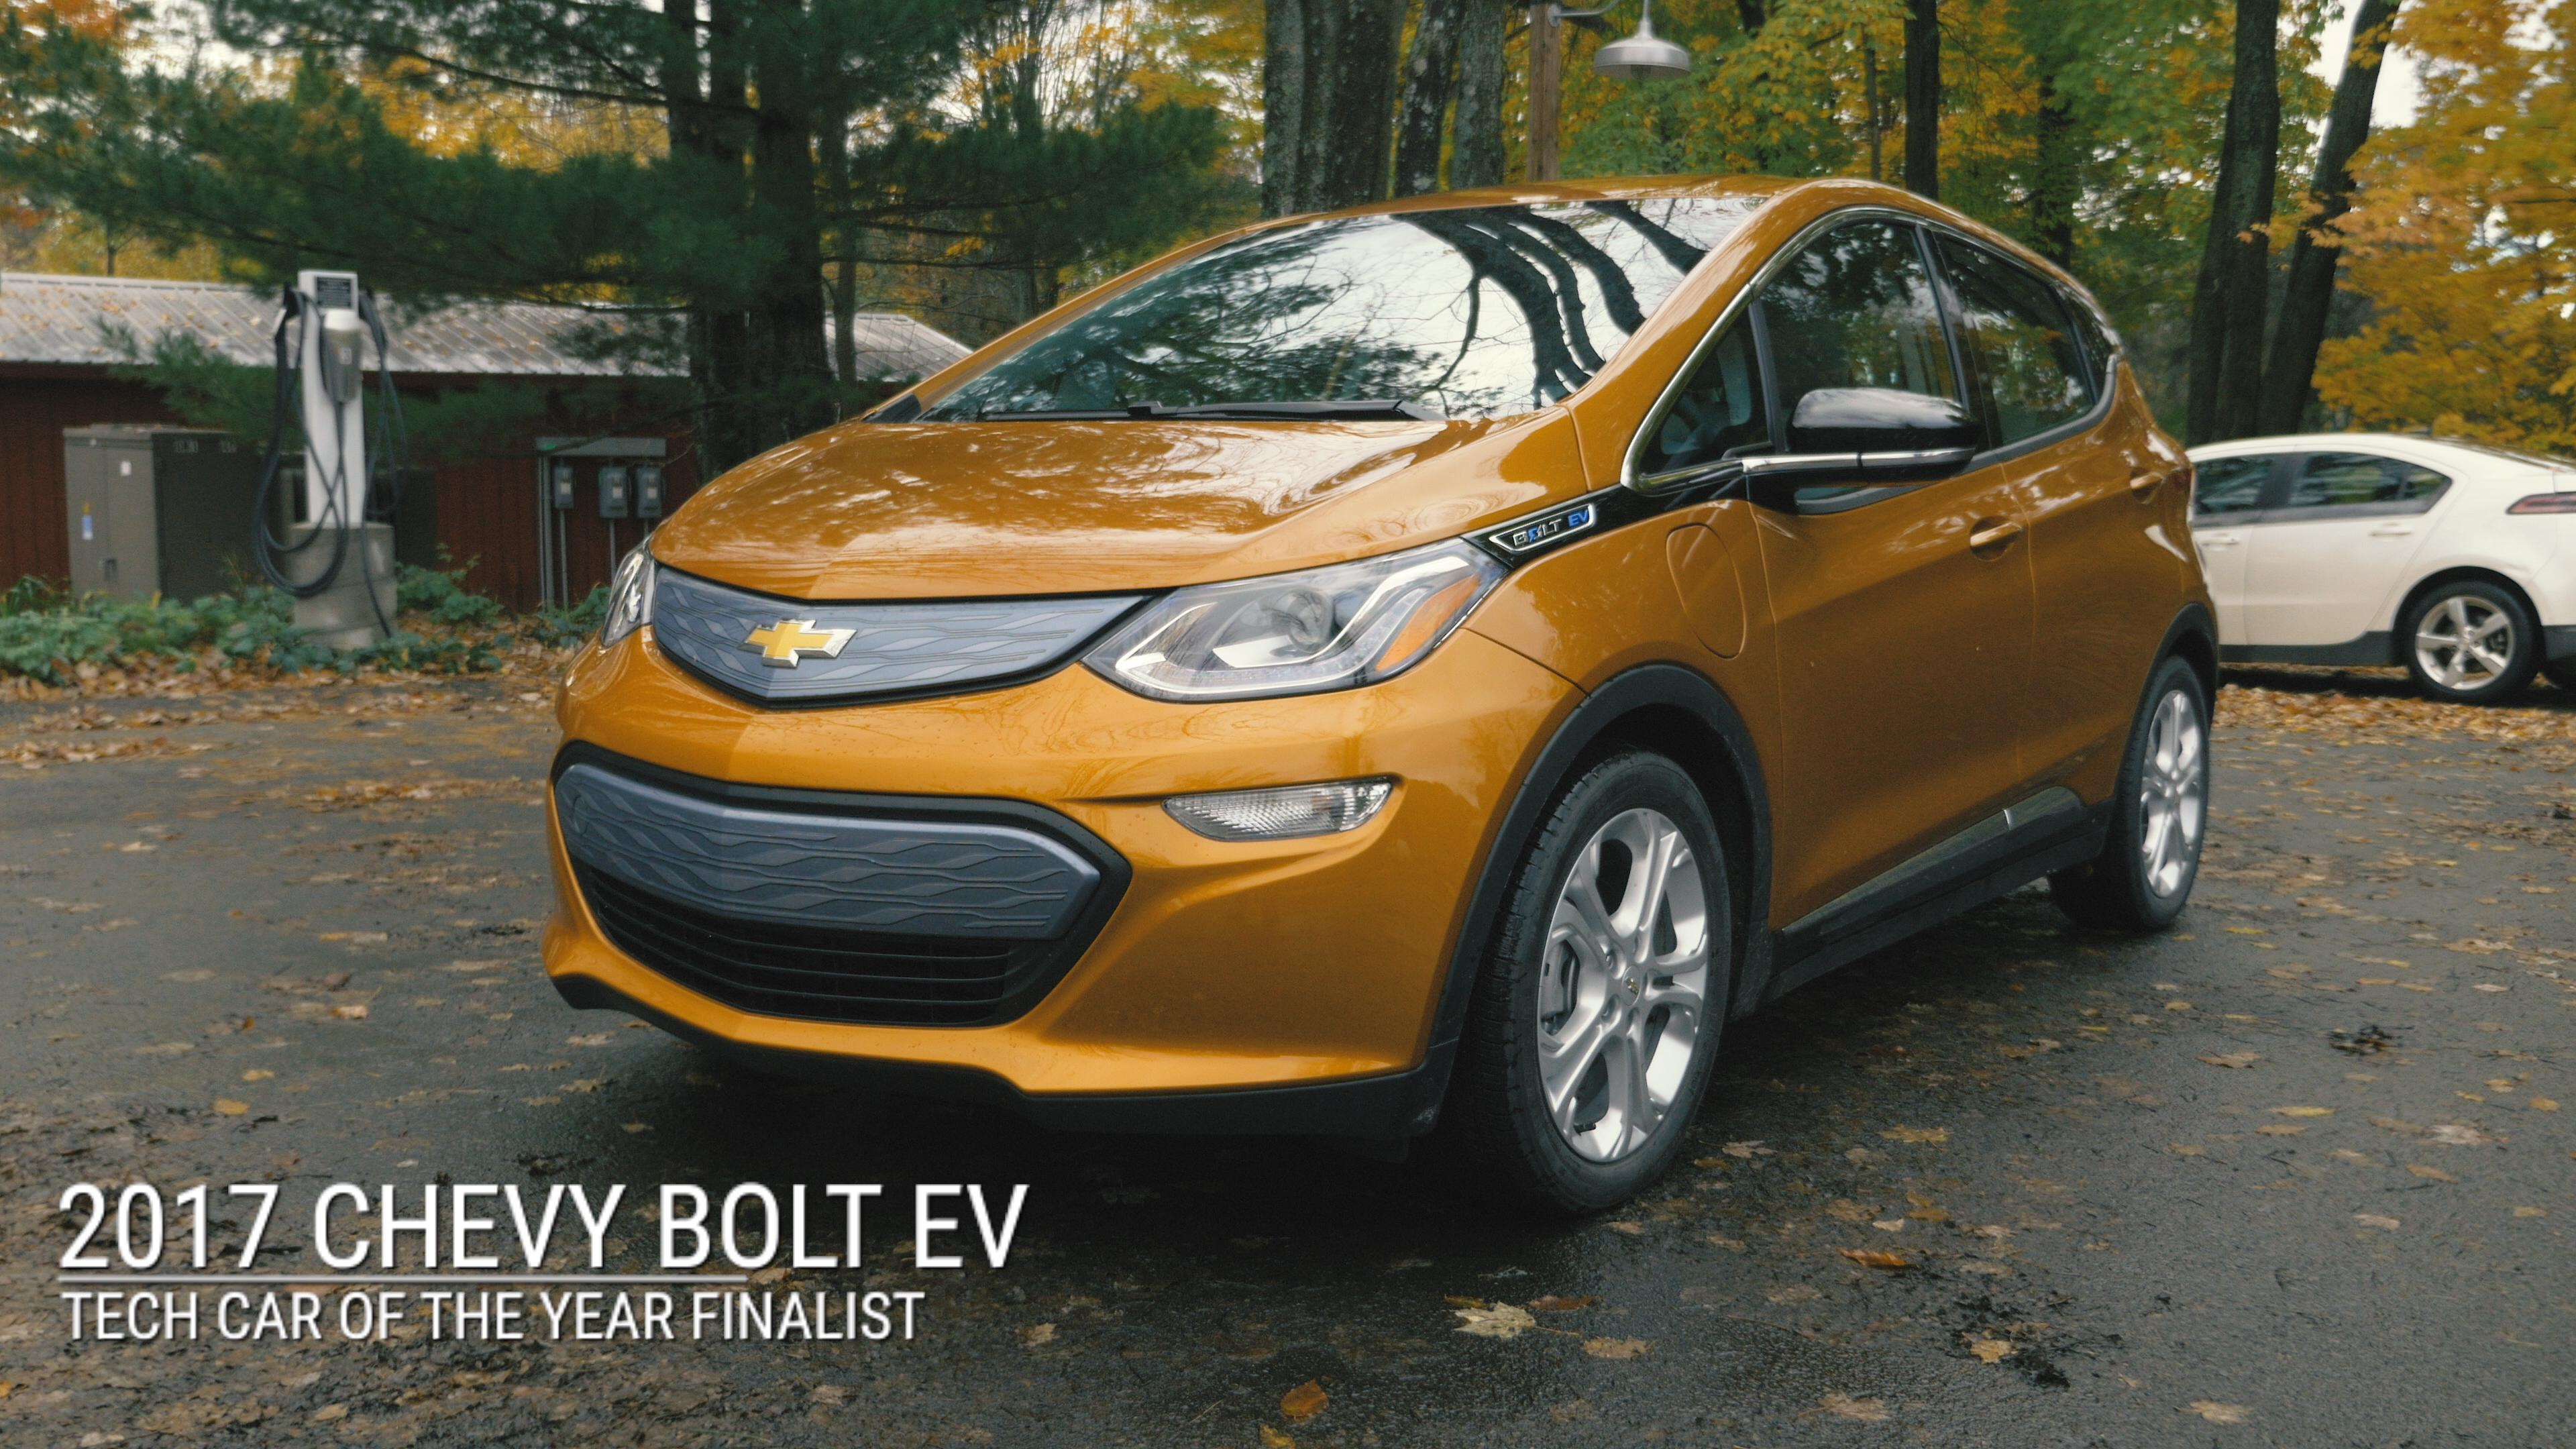 Chevrolet Bolt And Volt Our First Drive Review Of The 2019 Models Autoblog